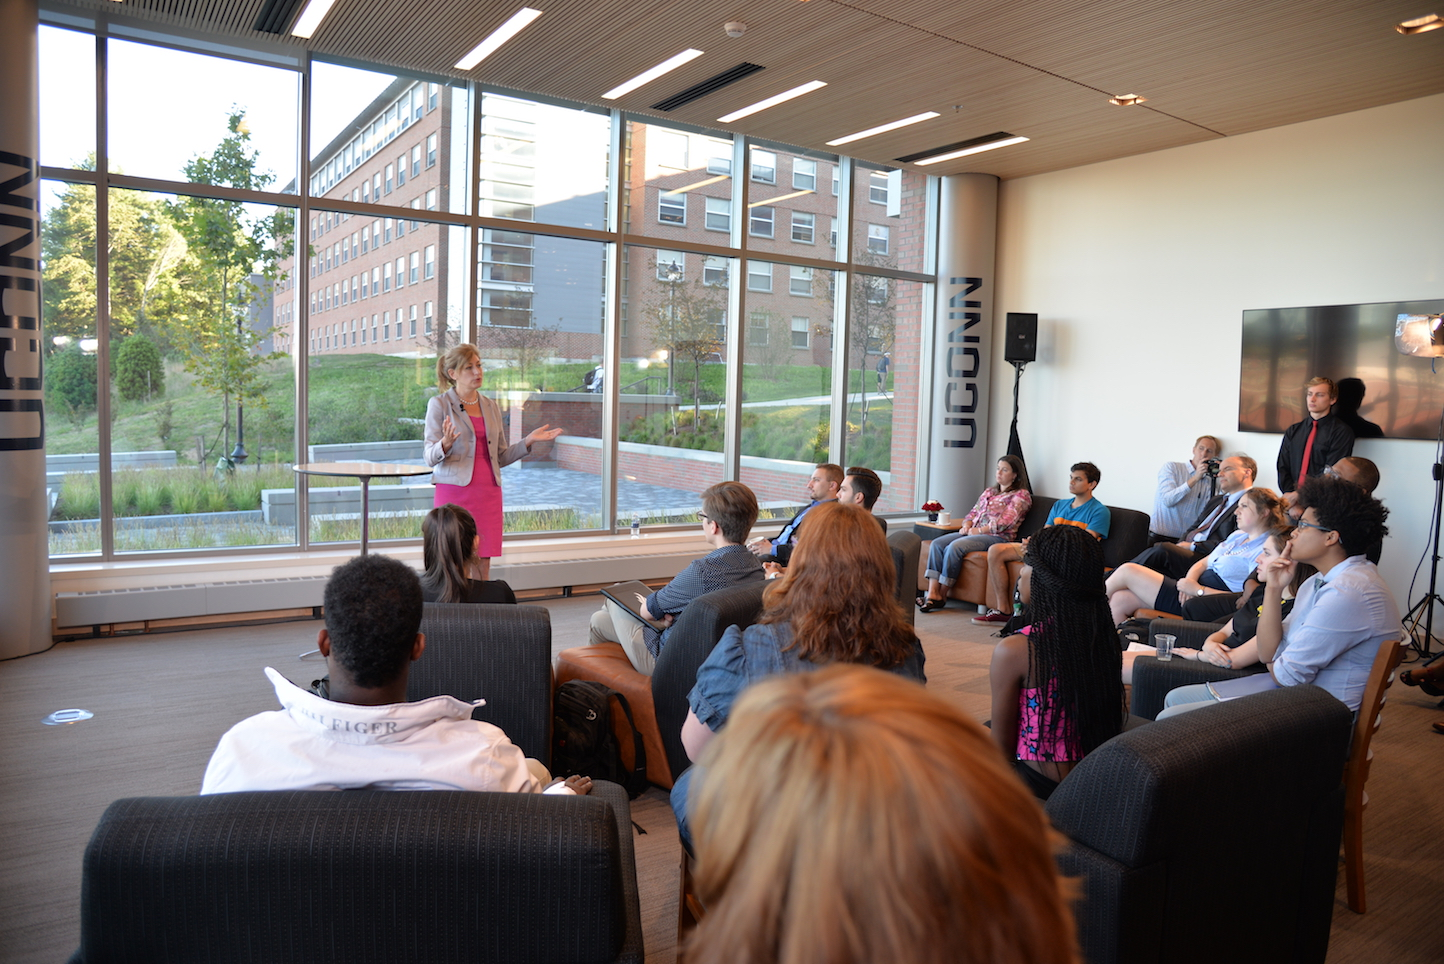 Susan Herbst held an open town hall in the Next Gen Dorm to field questions from the community of Monday evening. (Amar Batra/The Daily Campus)